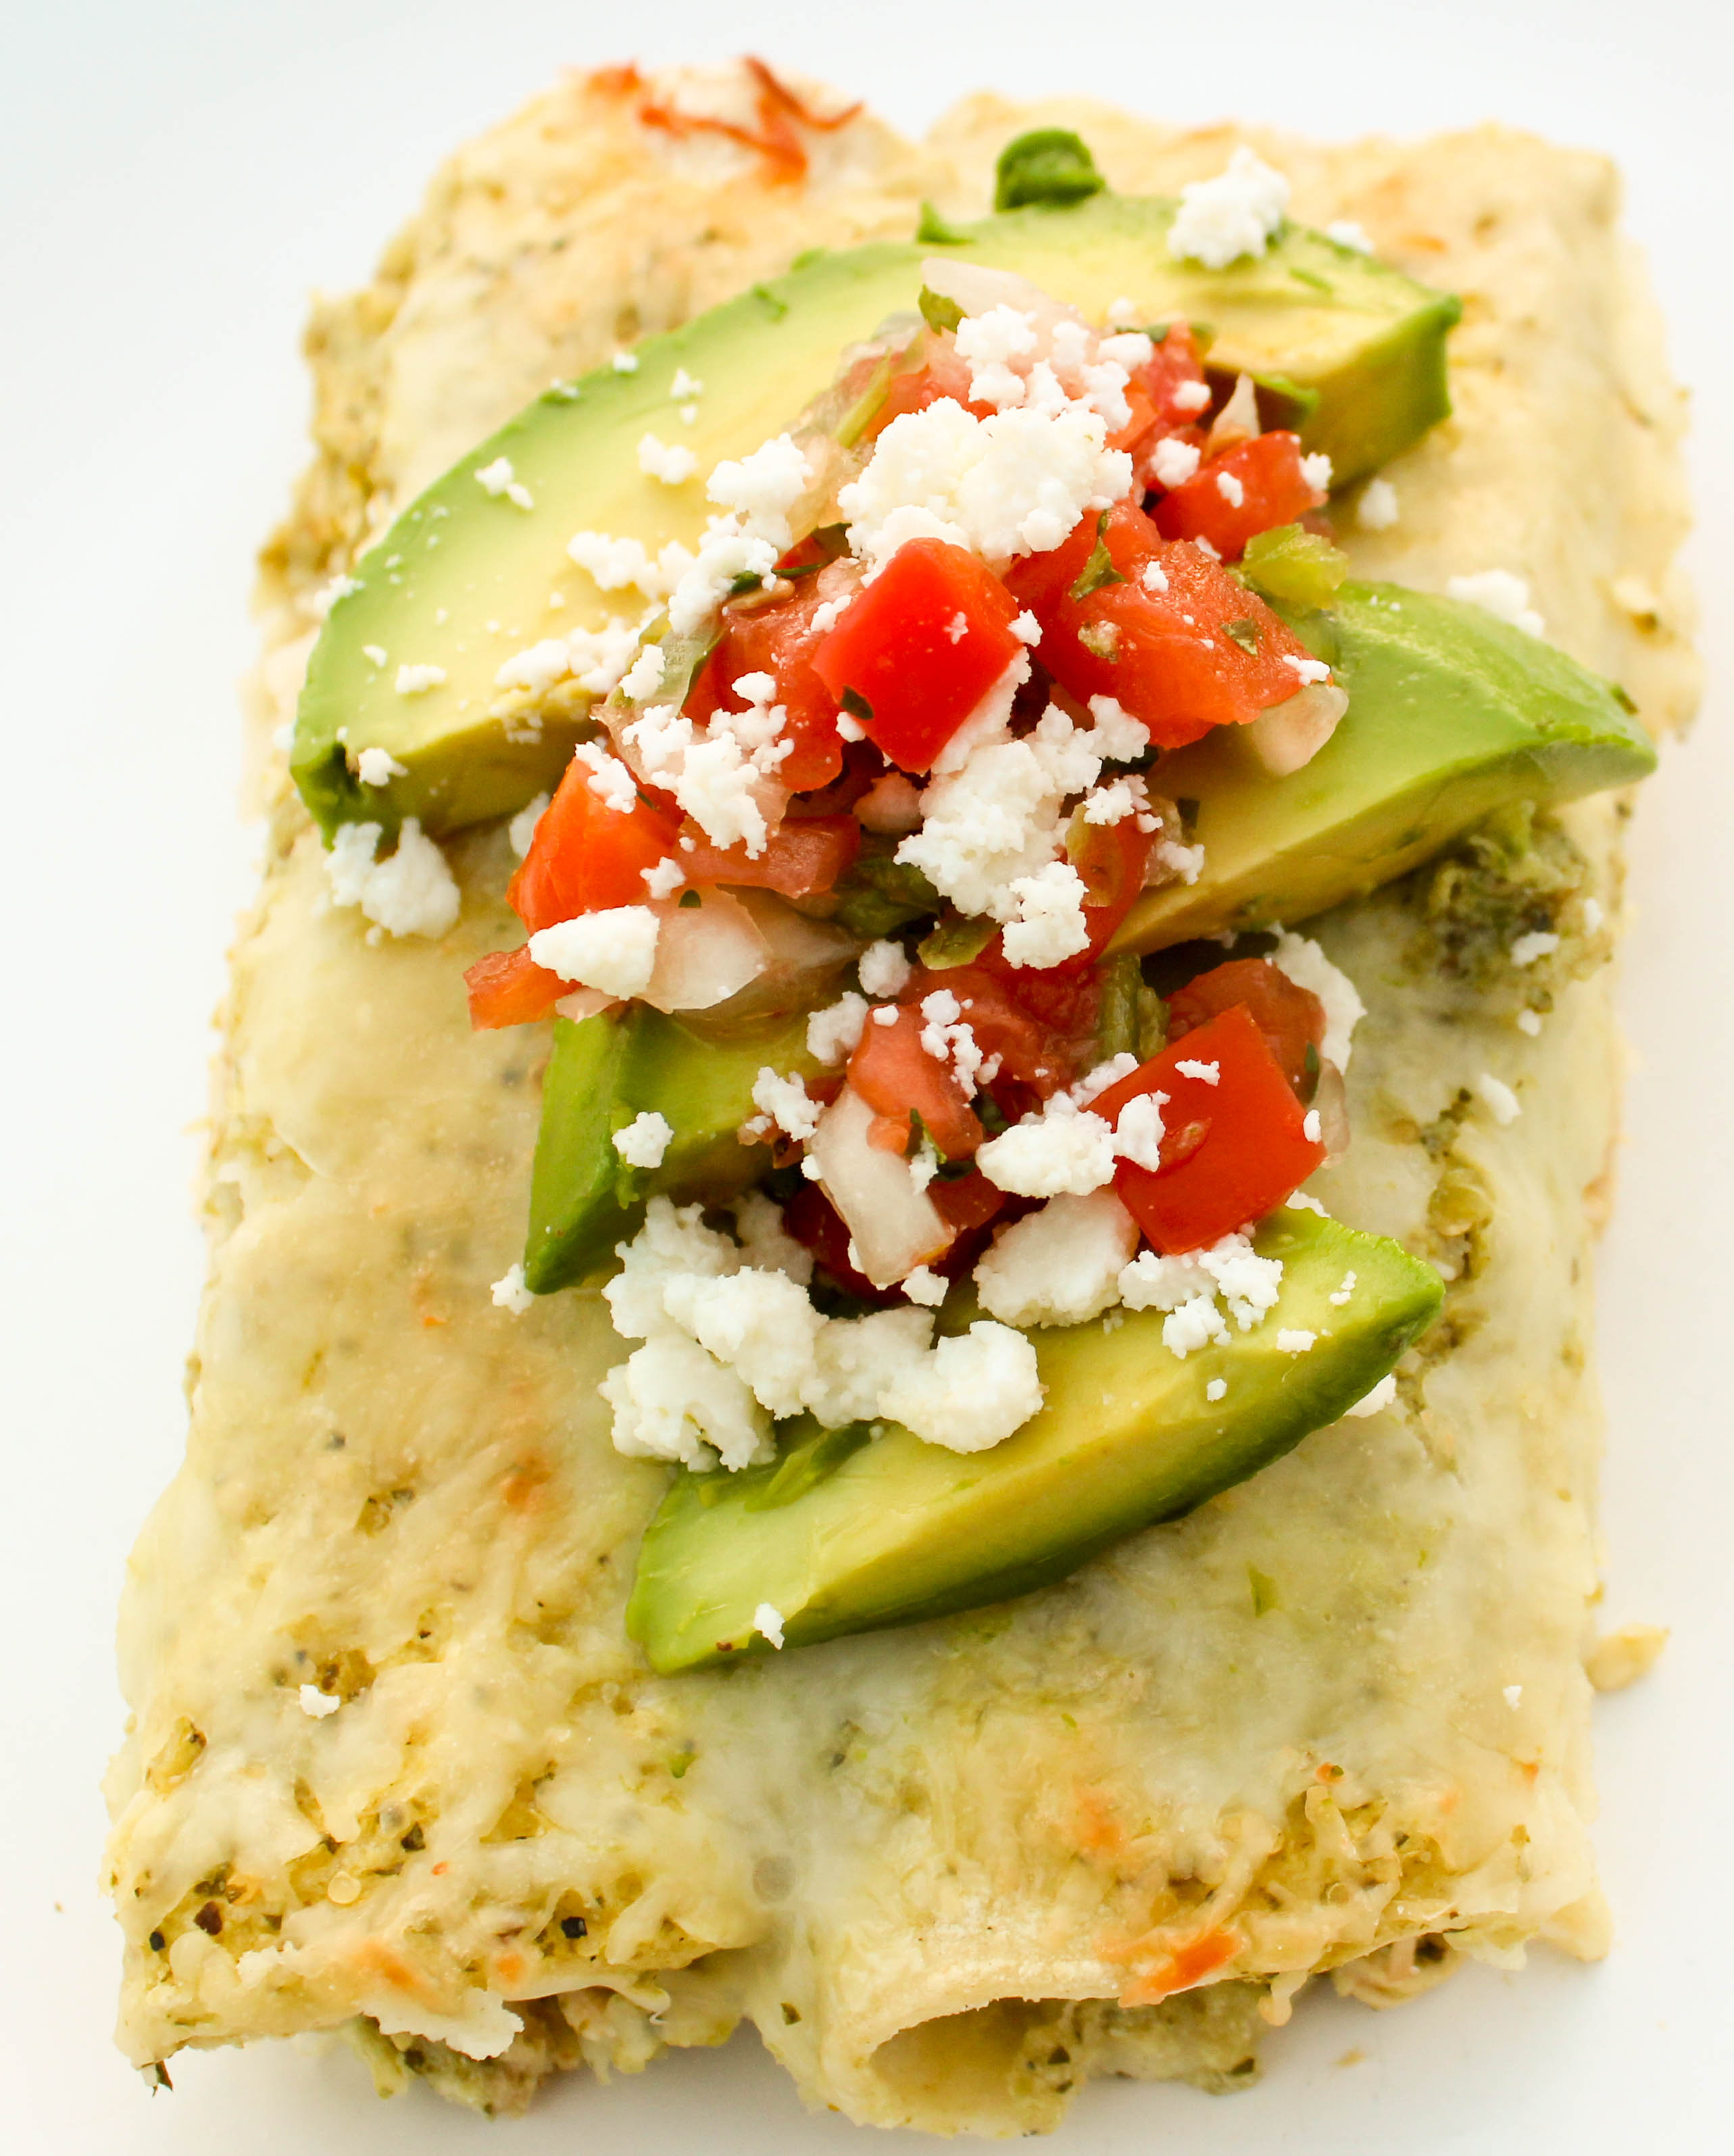 Shredded chicken enchiladas topped with creamy tomatillo salsa and cheese